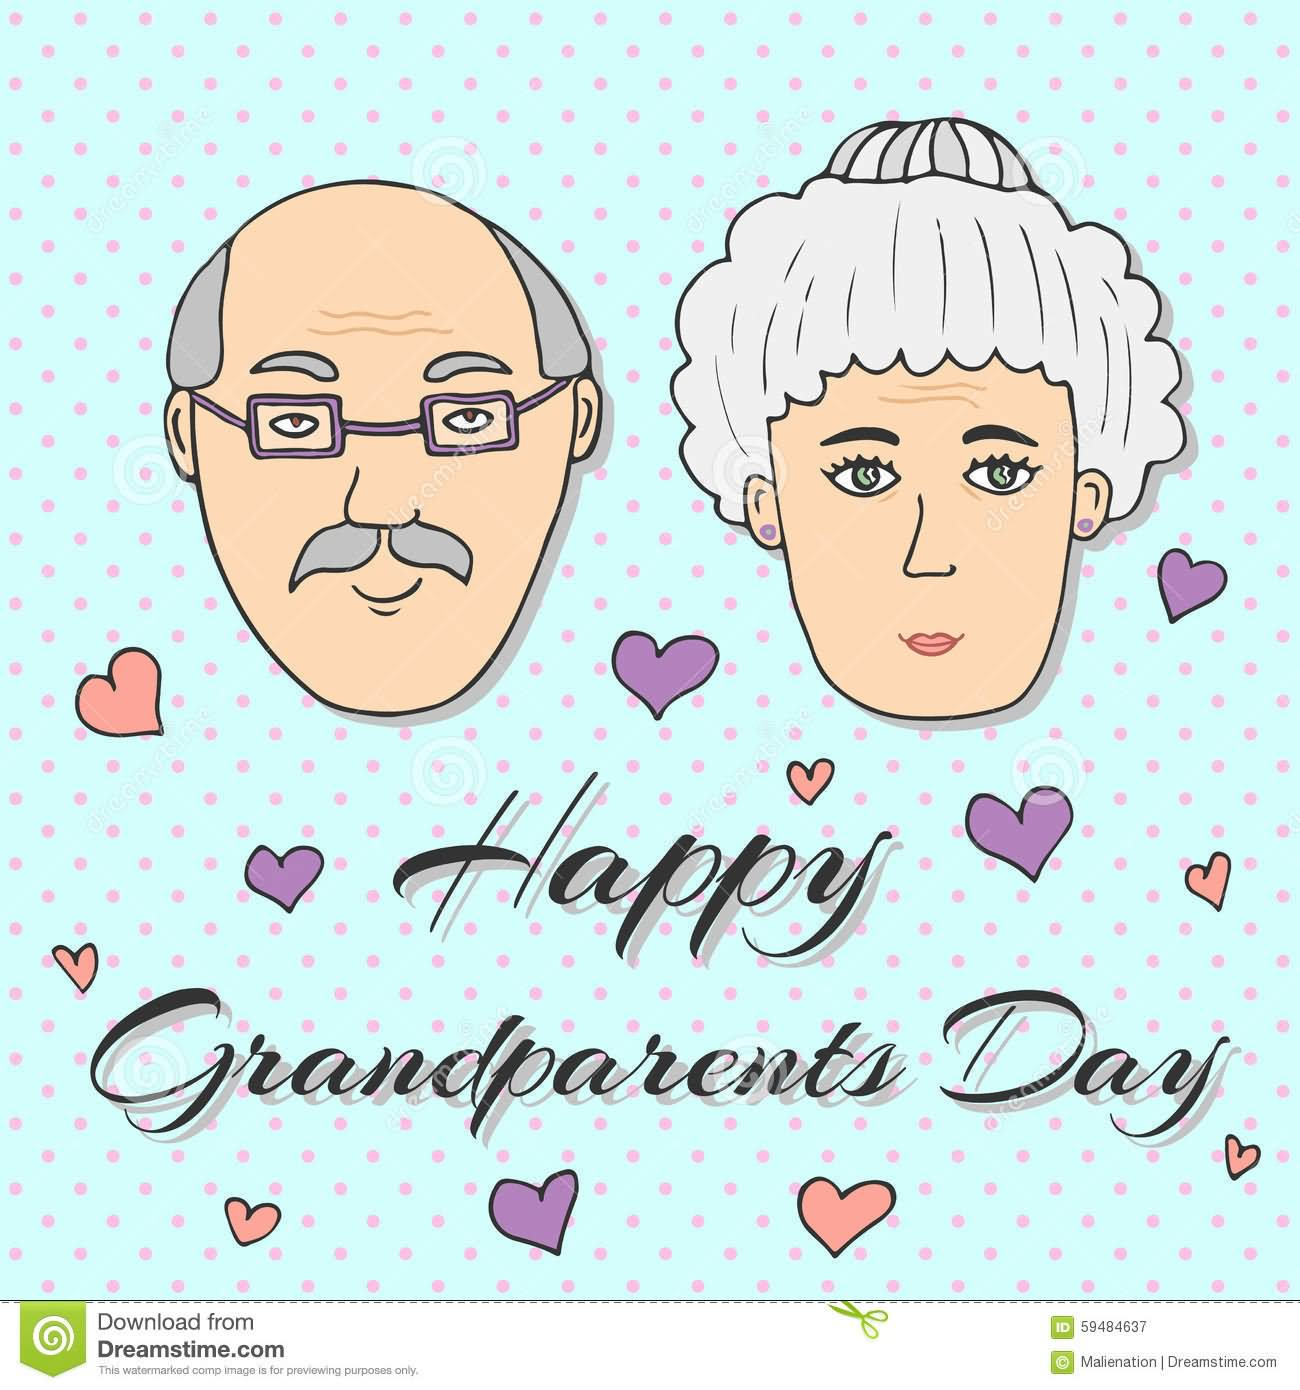 35 most beautiful grandparents day greeting card images happy grandparents day beautiful greeting card kristyandbryce Choice Image